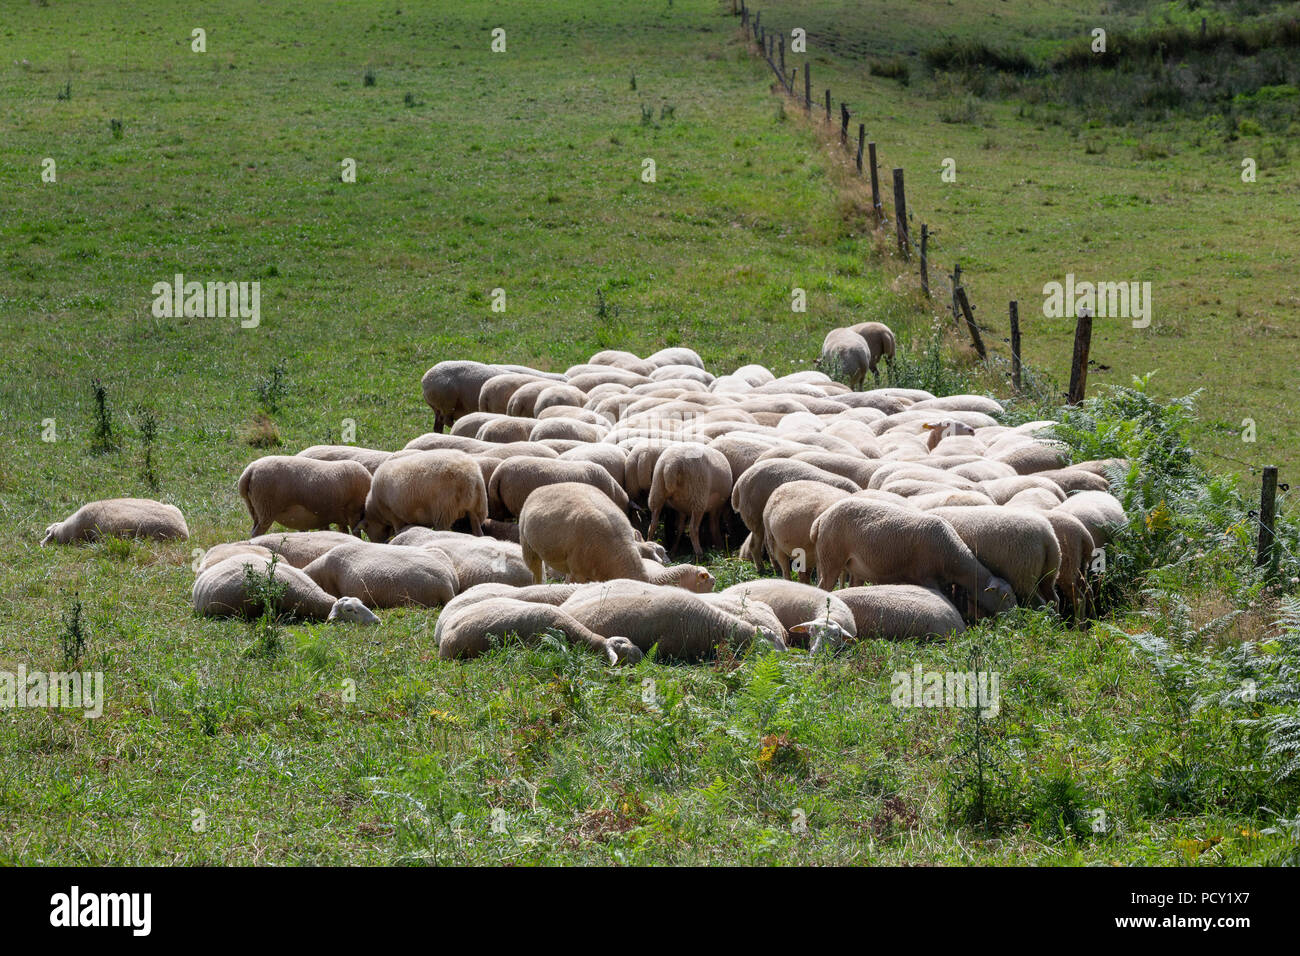 Herd of sheep huddled together to rest and ruminating in a green pasture. - Stock Image